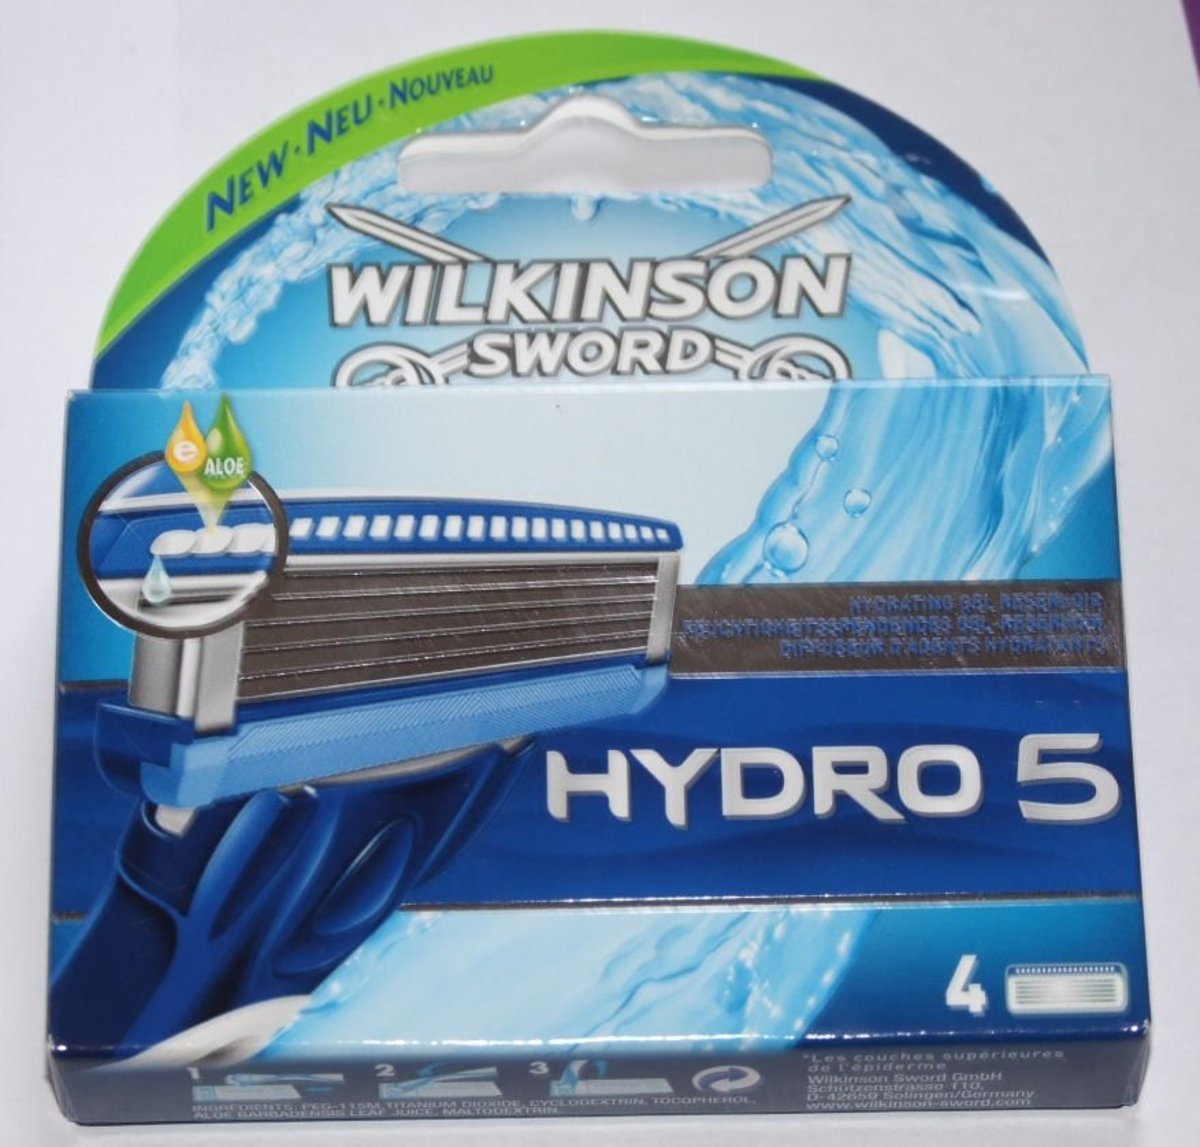 Wilkinsons Sword Hydro 5 Review Vs The Quattro And